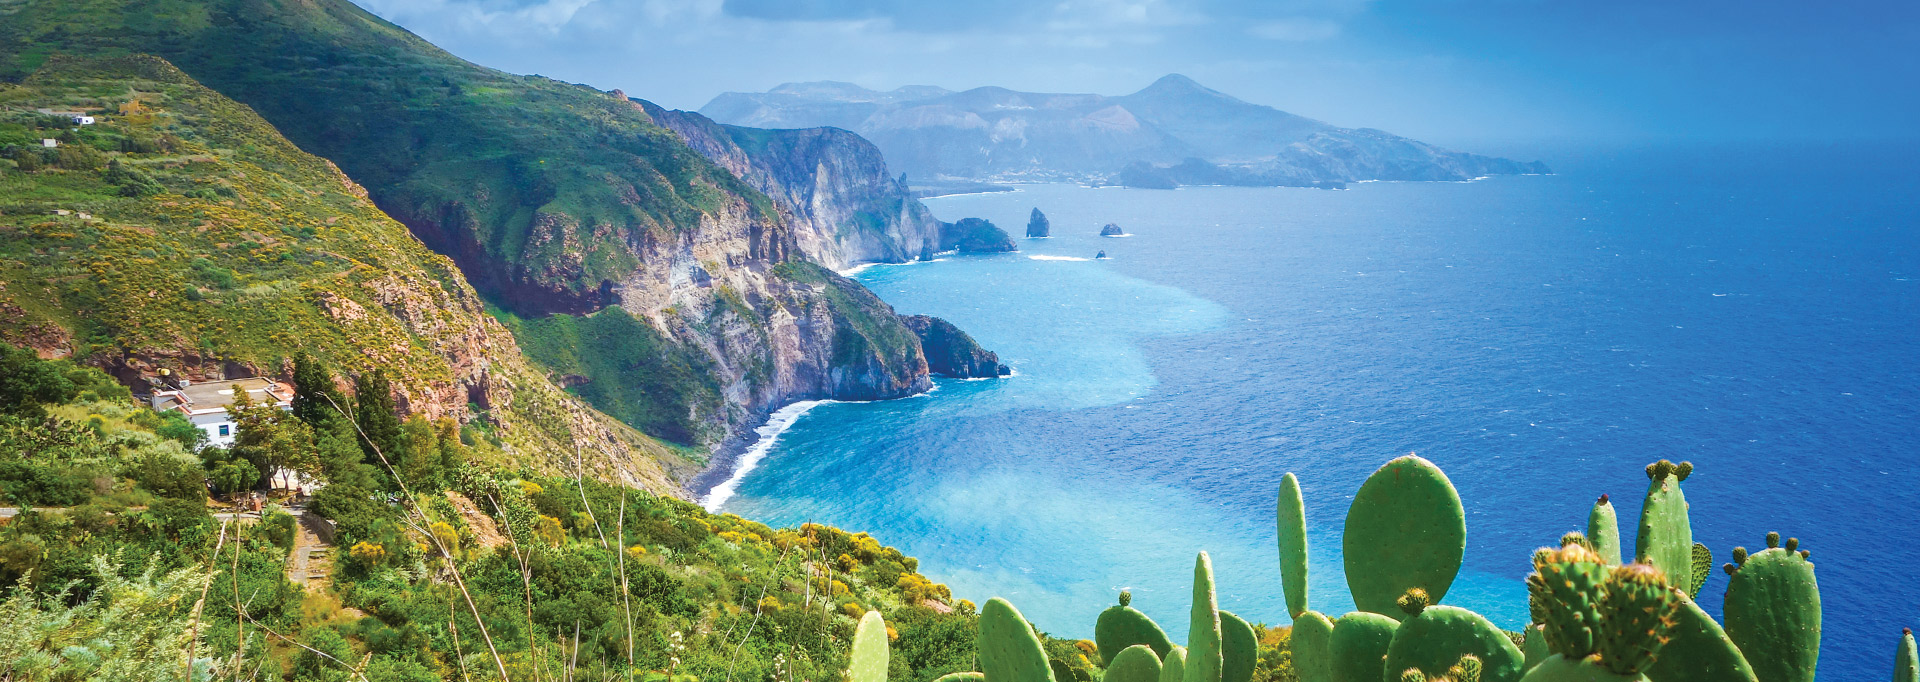 Aeolian Islands Sailing Tour